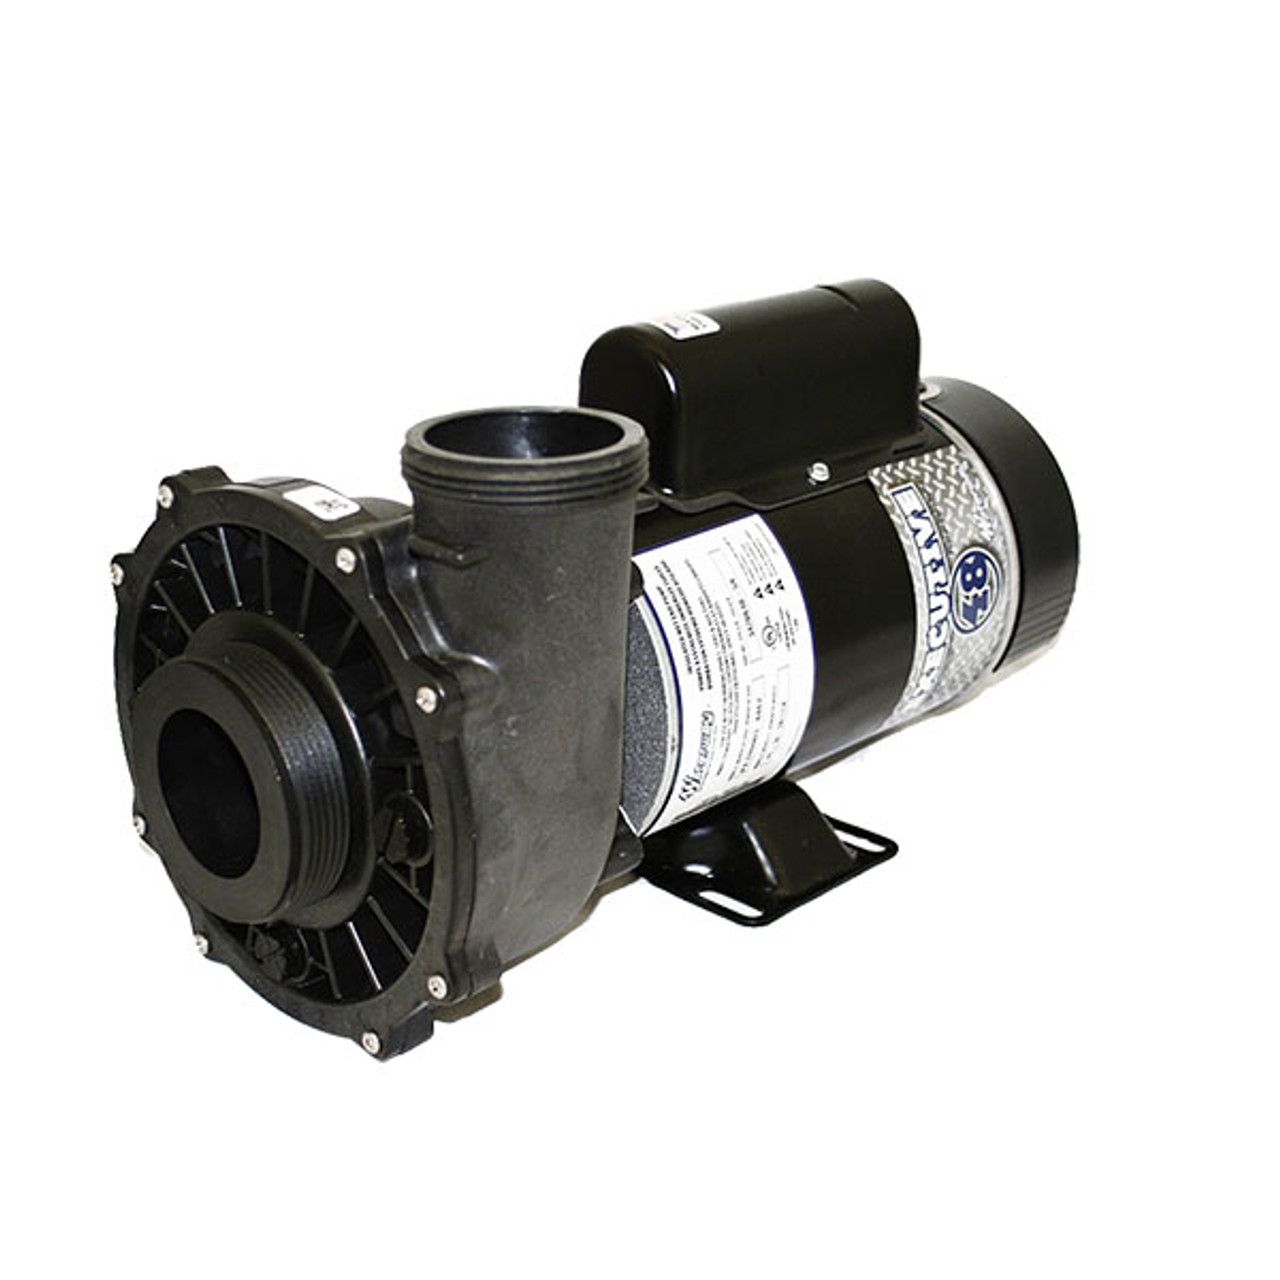 Jacuzzi Pool Pump Union Waterway Executive 48 1 5hp 2 Speed Pump 2